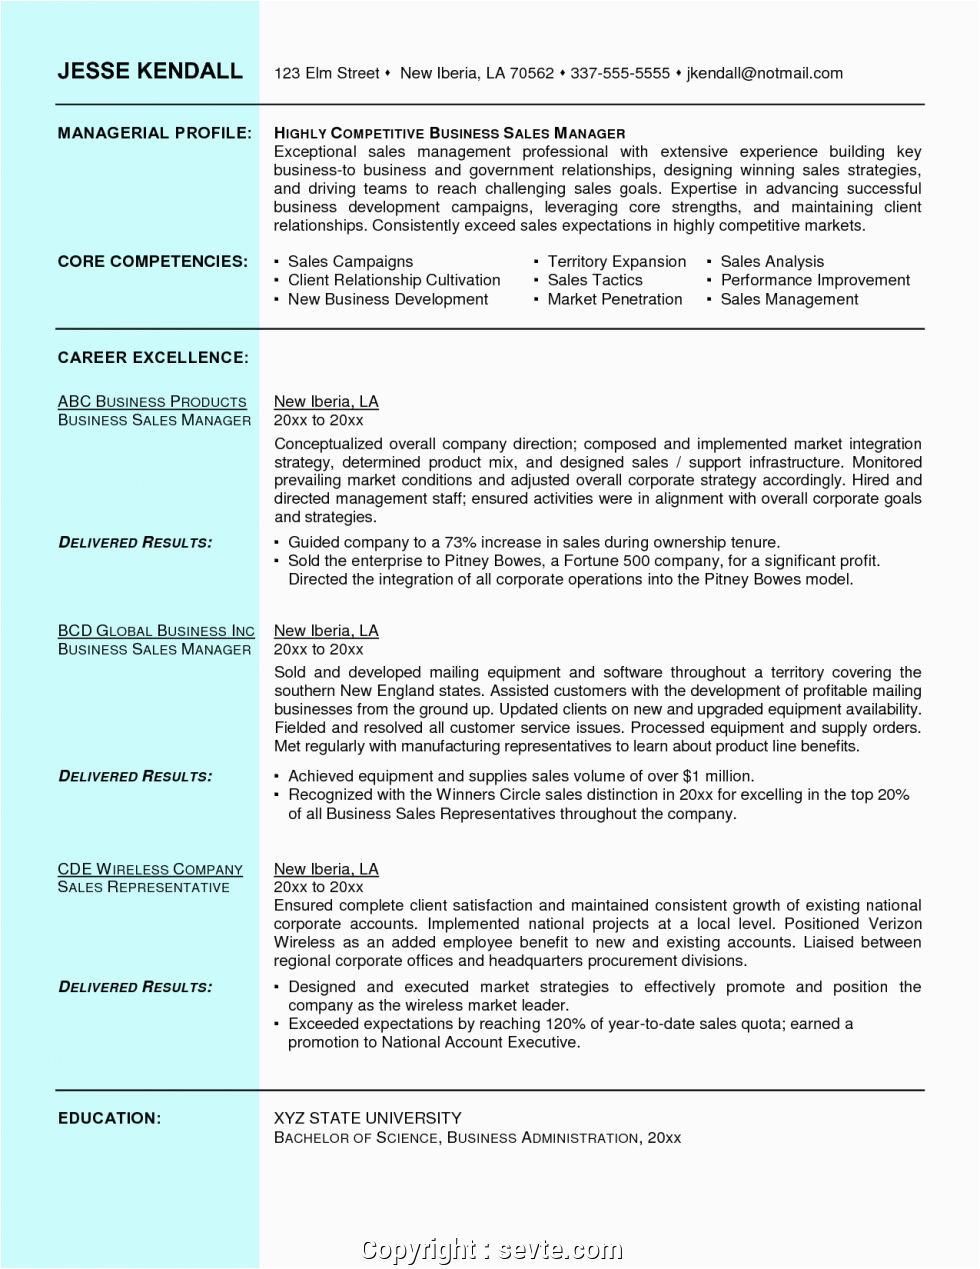 Sample Resume for Sales and Marketing Executive Free Resume format for Sales and Marketing Manager Sample